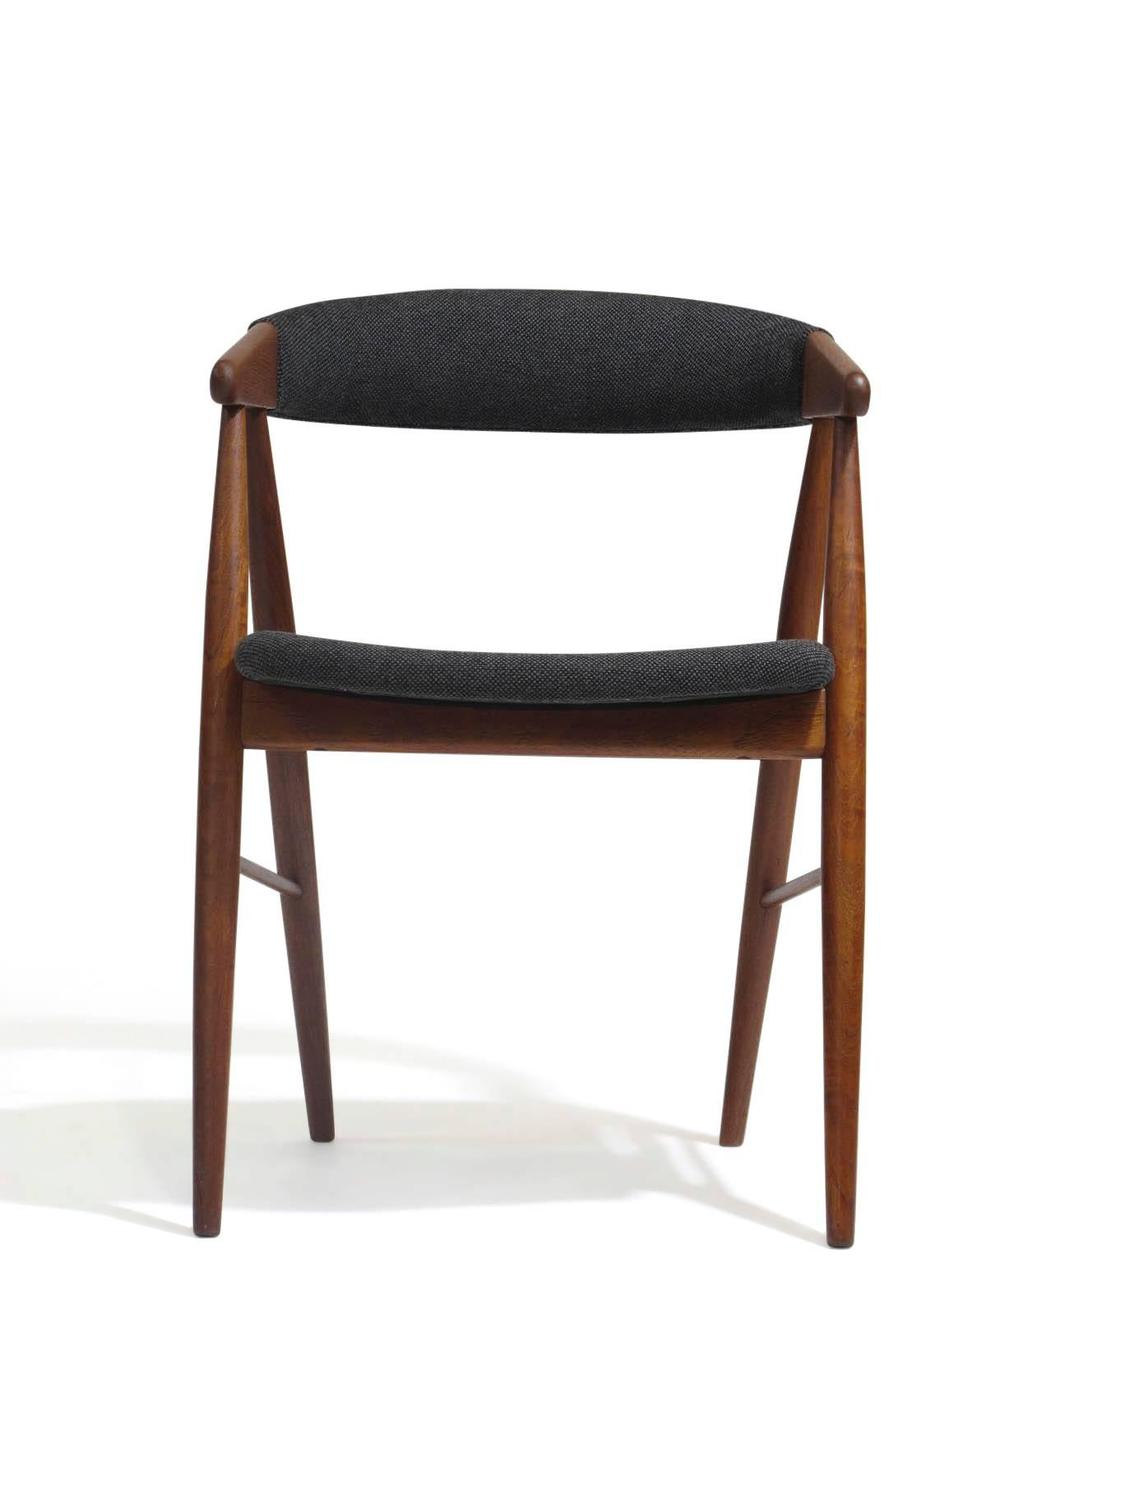 teak dining room chairs for sale hanging jute chair danish arm at 1stdibs